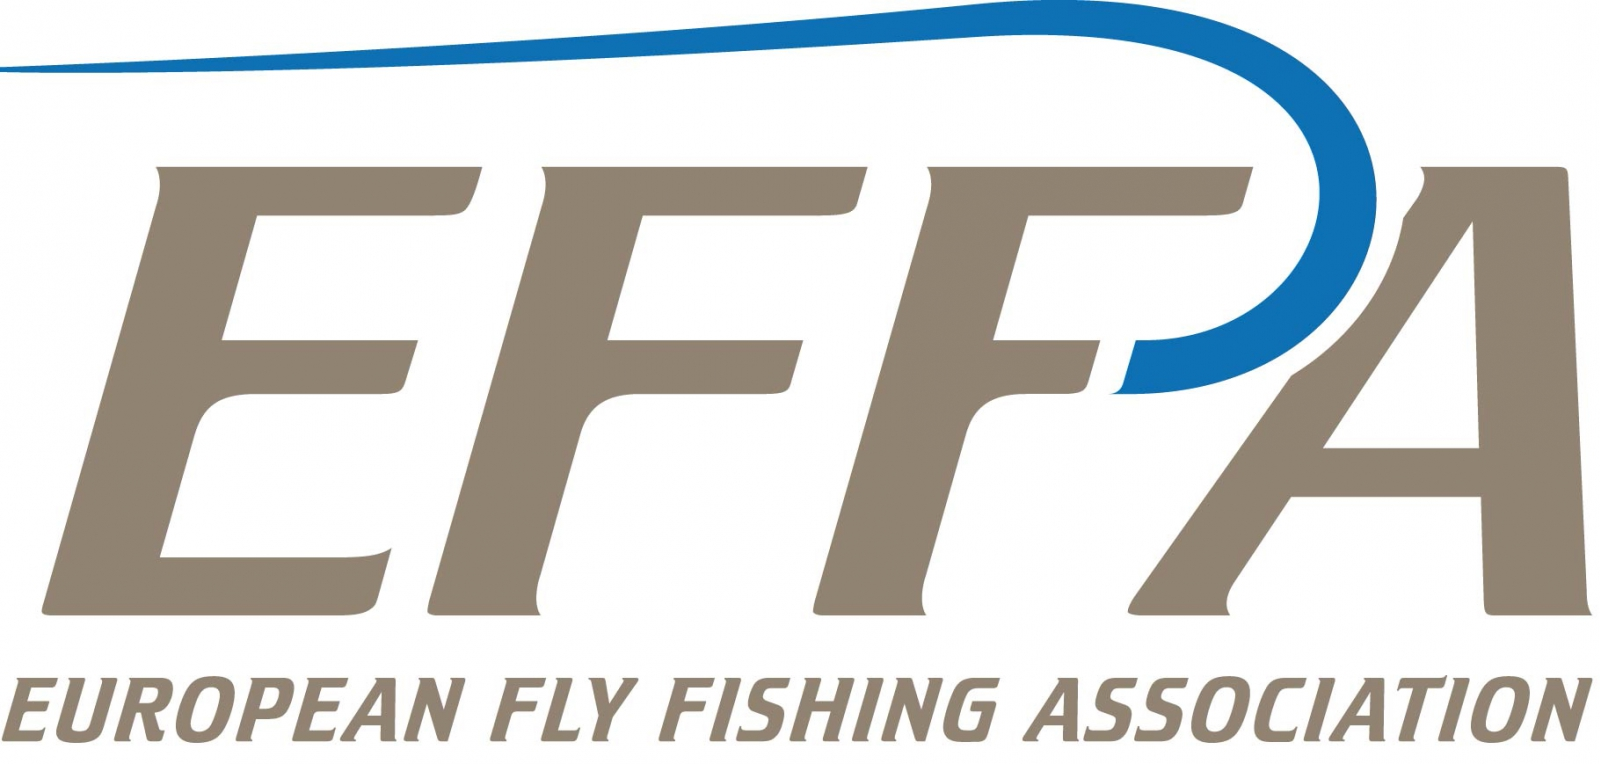 European Fly Fishing Association